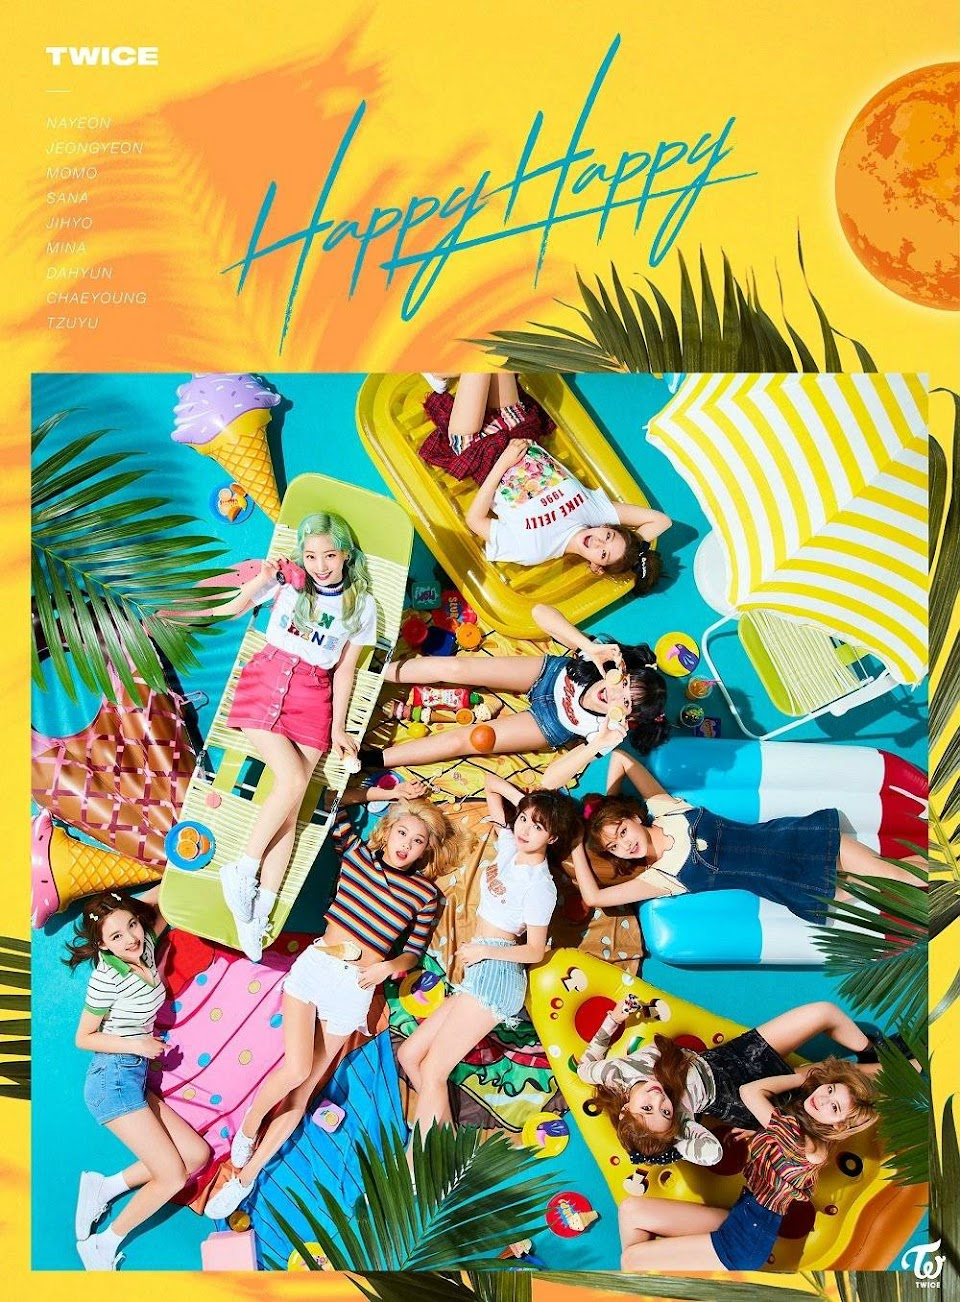 twice_happyhappy_2